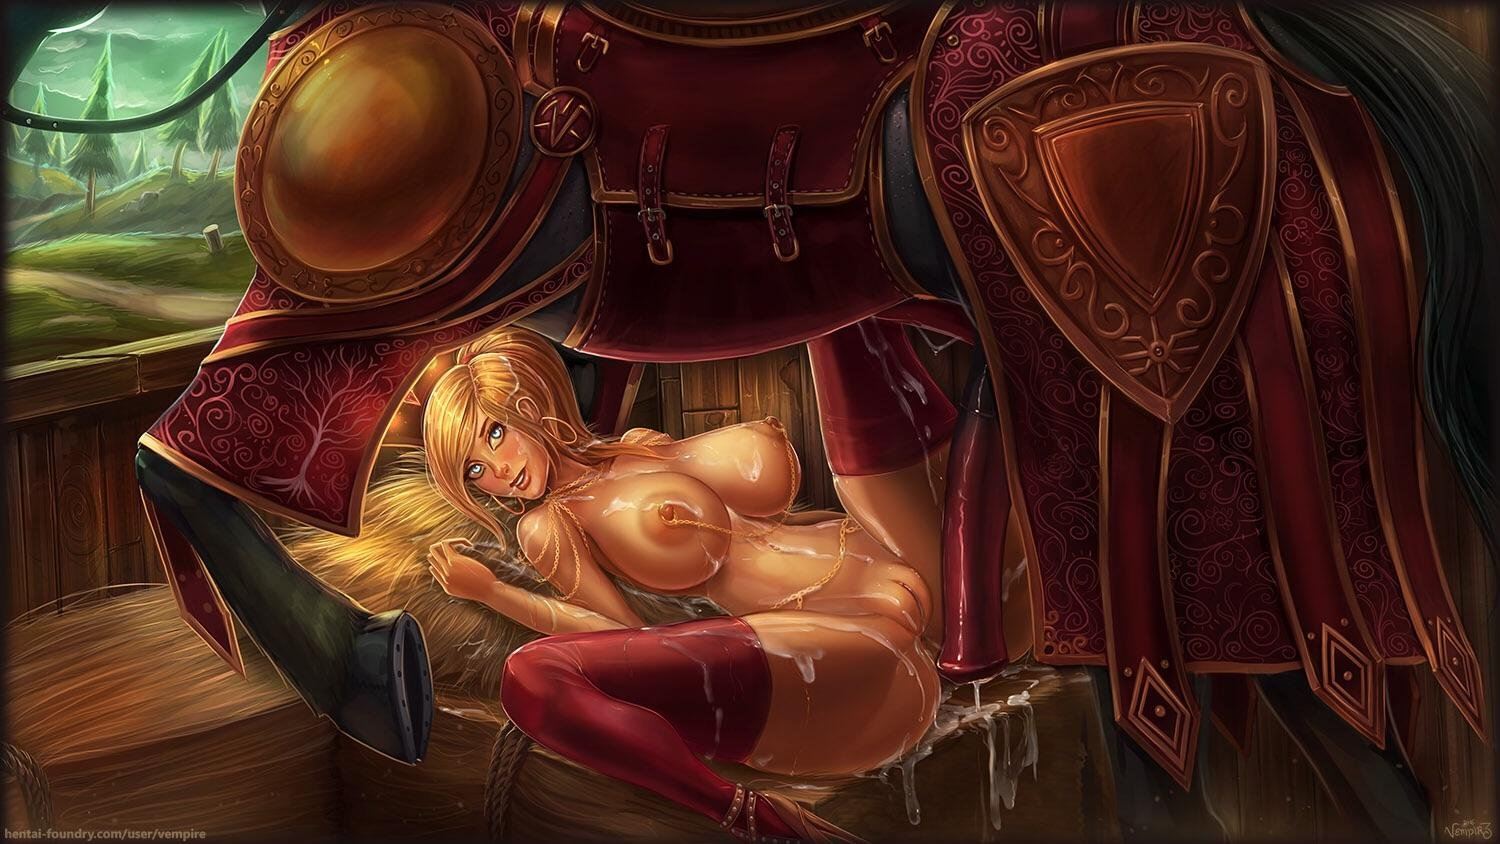 High Ranking Officials Enjoy Showing Off Their Immense Wealth, So They Only Hire The Finest Sluts To Tend To Their Horses [Vempire]